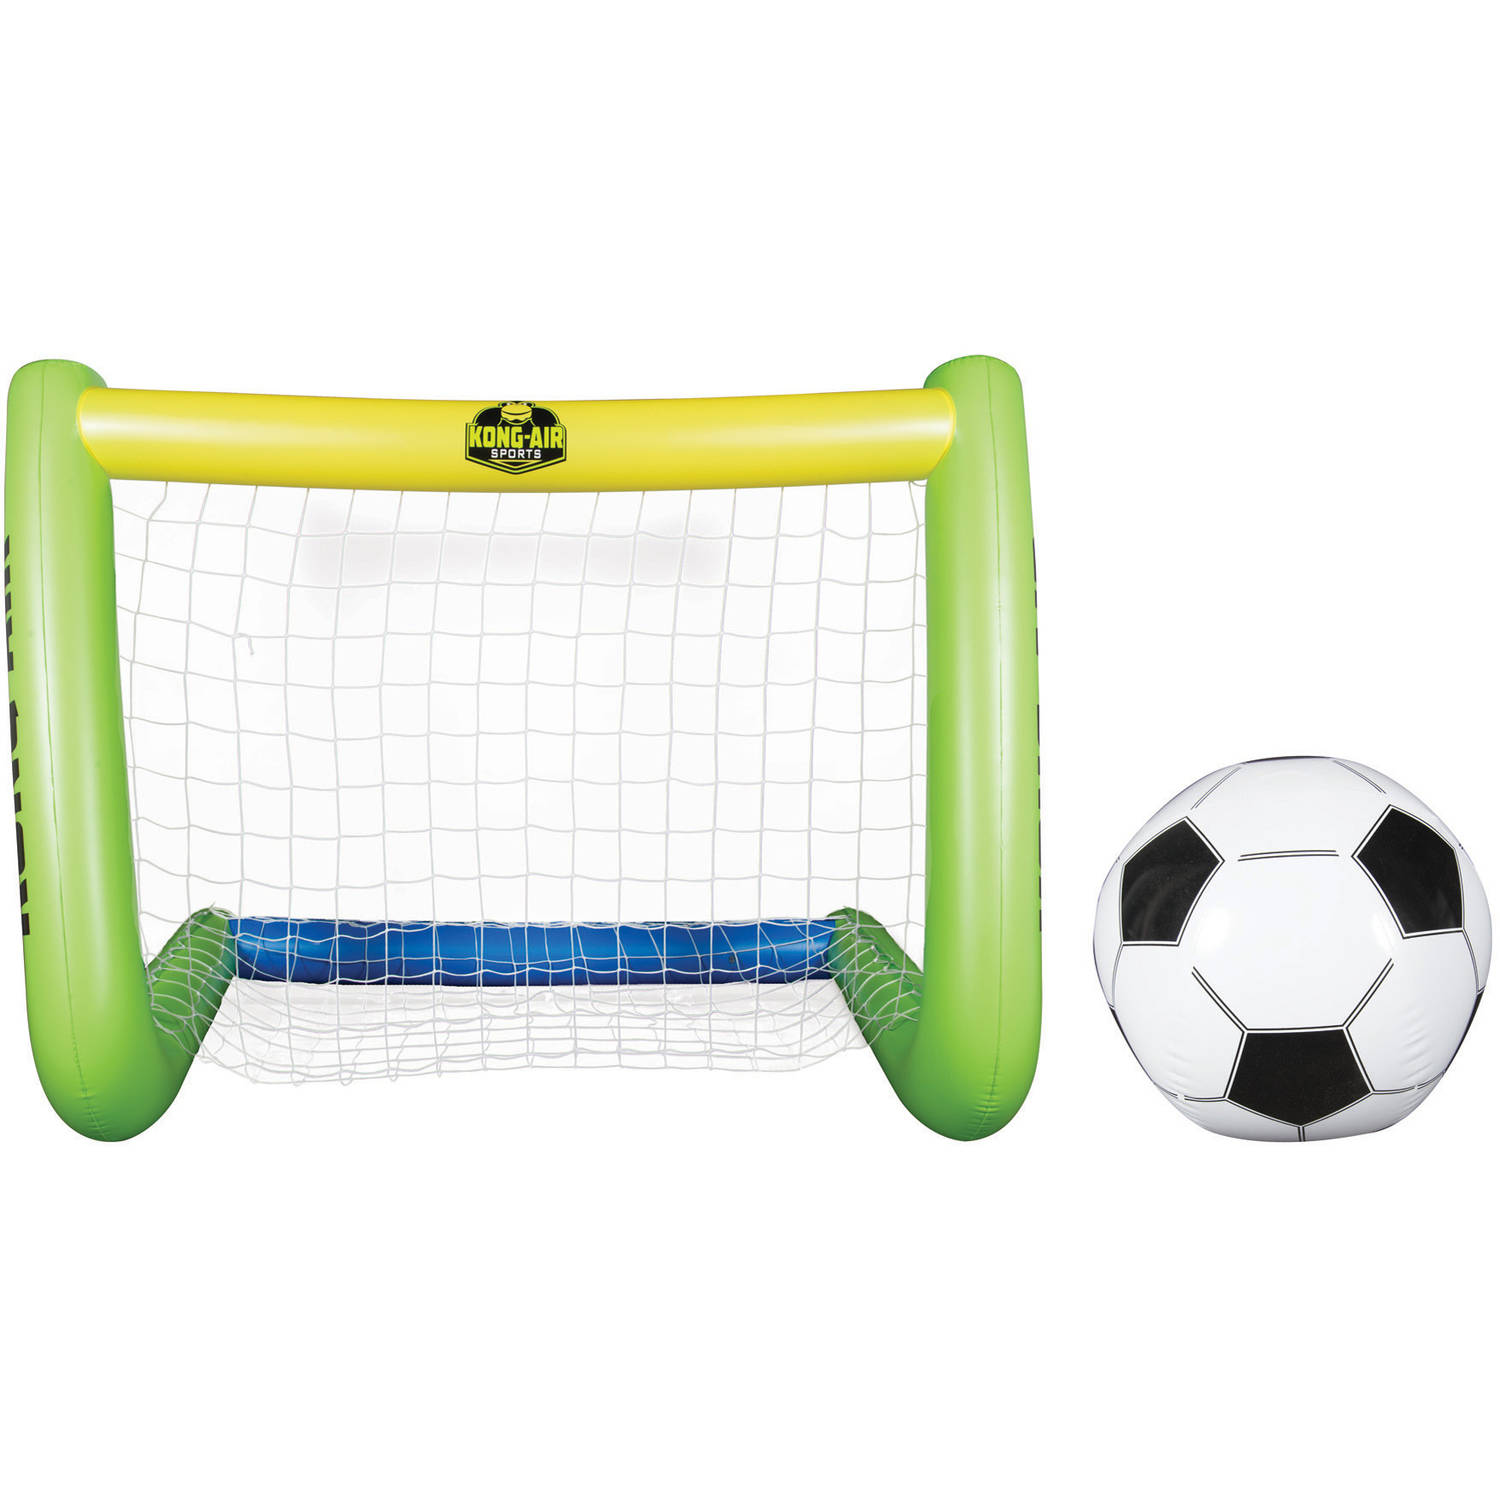 Franklin Sports Kong-Air Sports Soccer Set by Franklin Sports